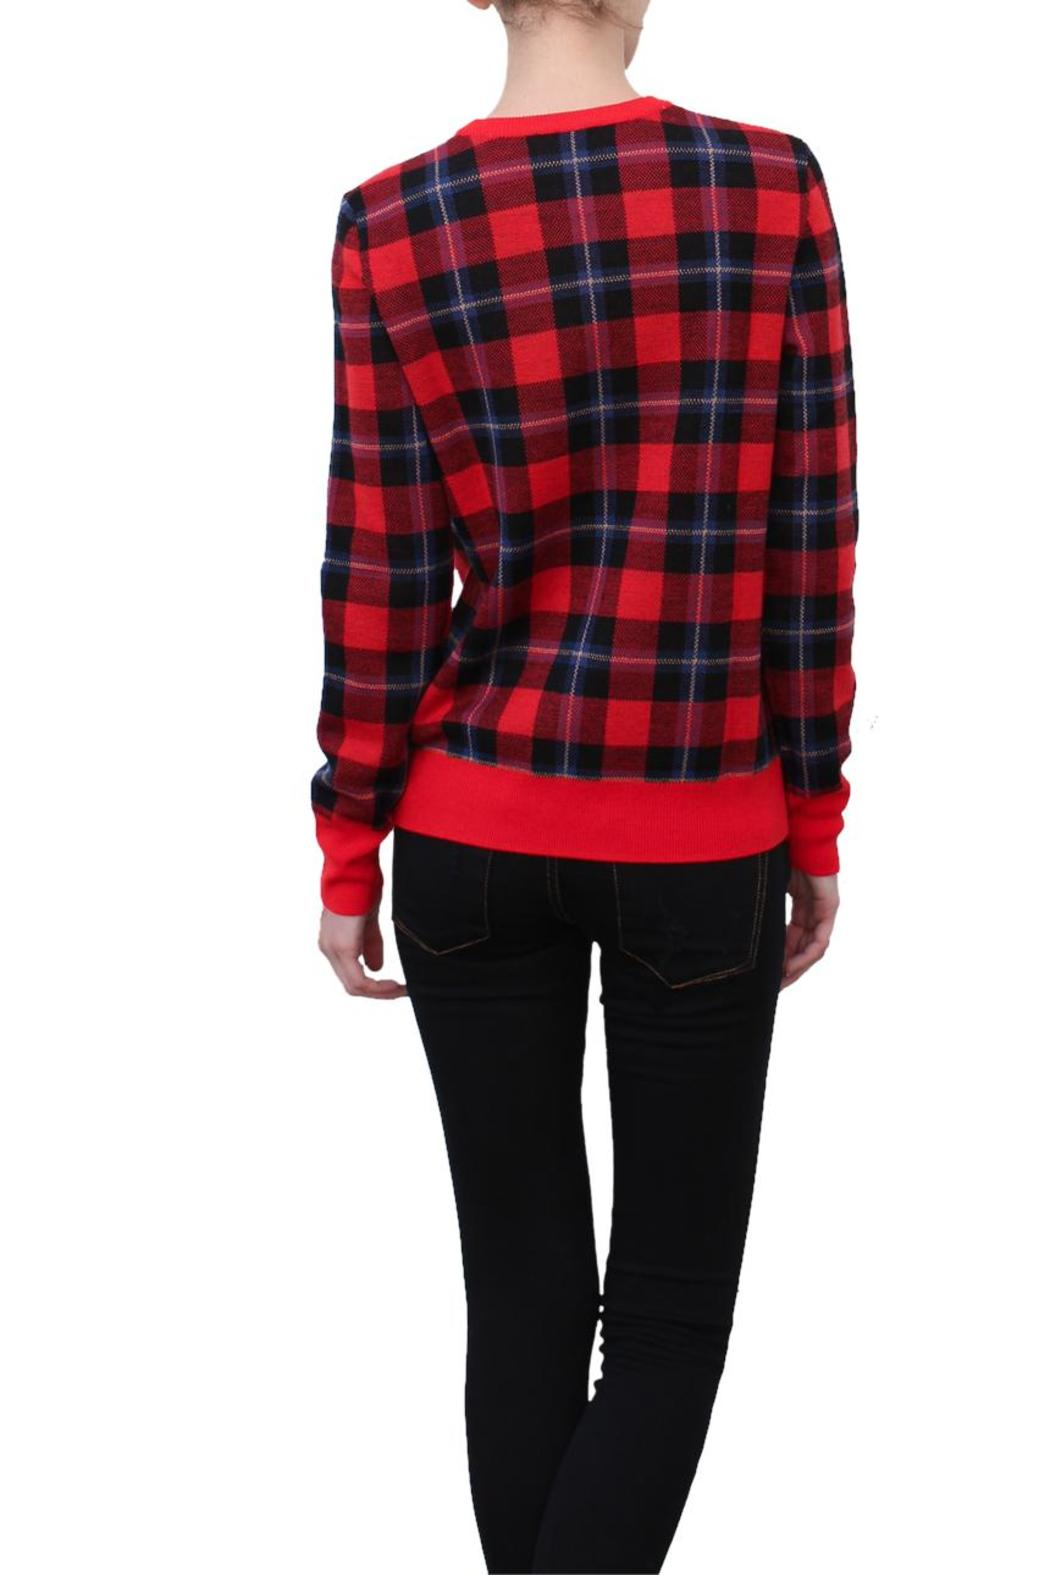 Equipment Shane Cherry Red Sweater from San Diego by Matti D ...